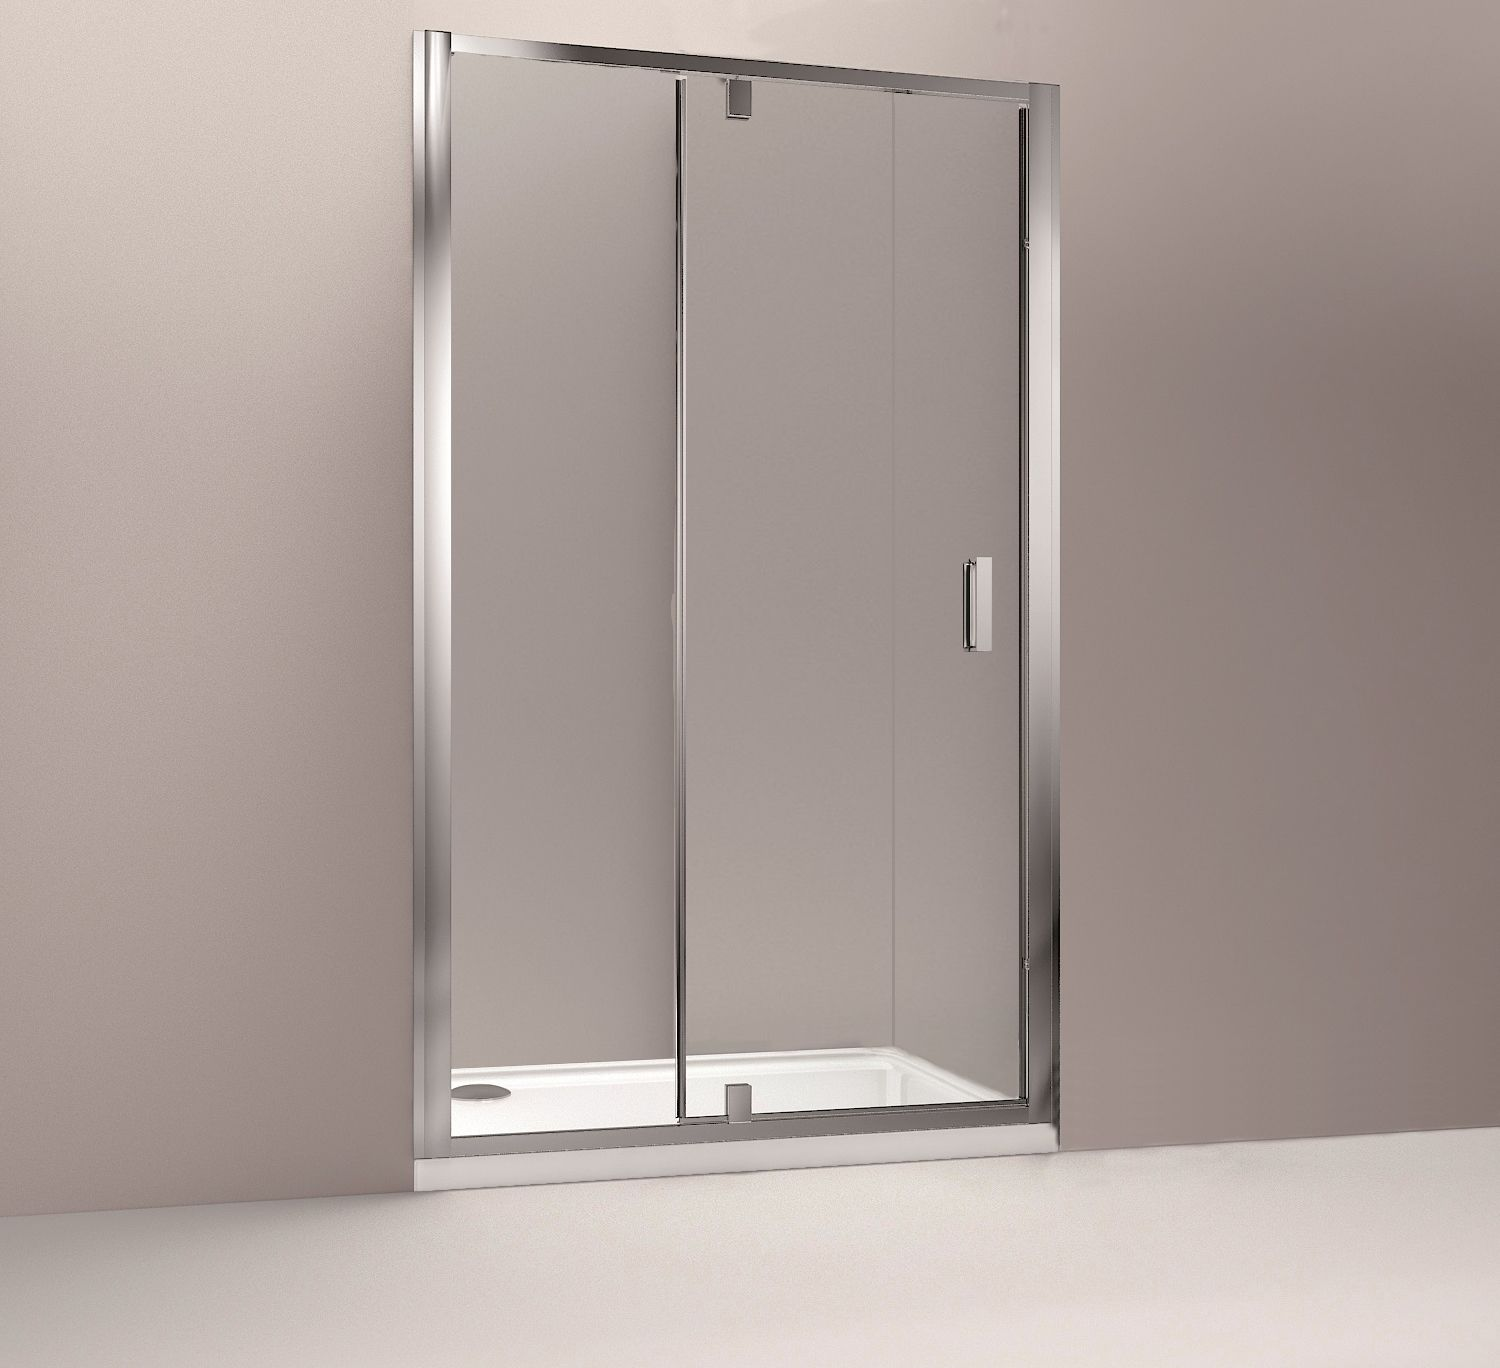 Mira Leap Walk In Shower Enclosure Tray 1400x800mm Left Hand 1400x800mm Enclosure Hand Leap Lef In 2020 Walk In Shower Enclosures Shower Enclosure